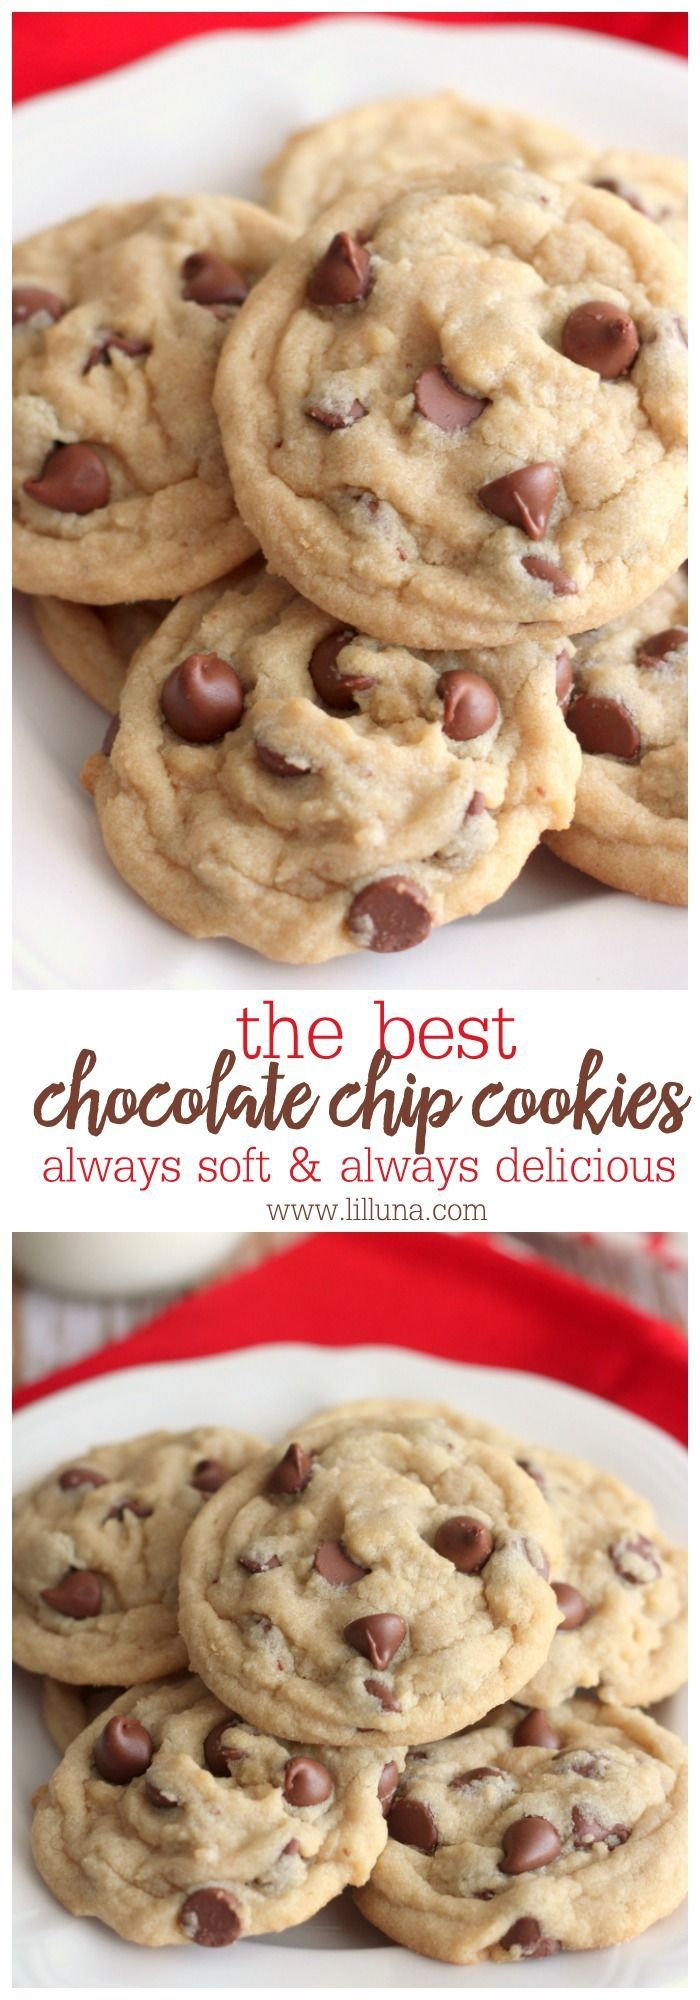 1000+ images about Dessert on Pinterest | Chocolate cakes ...